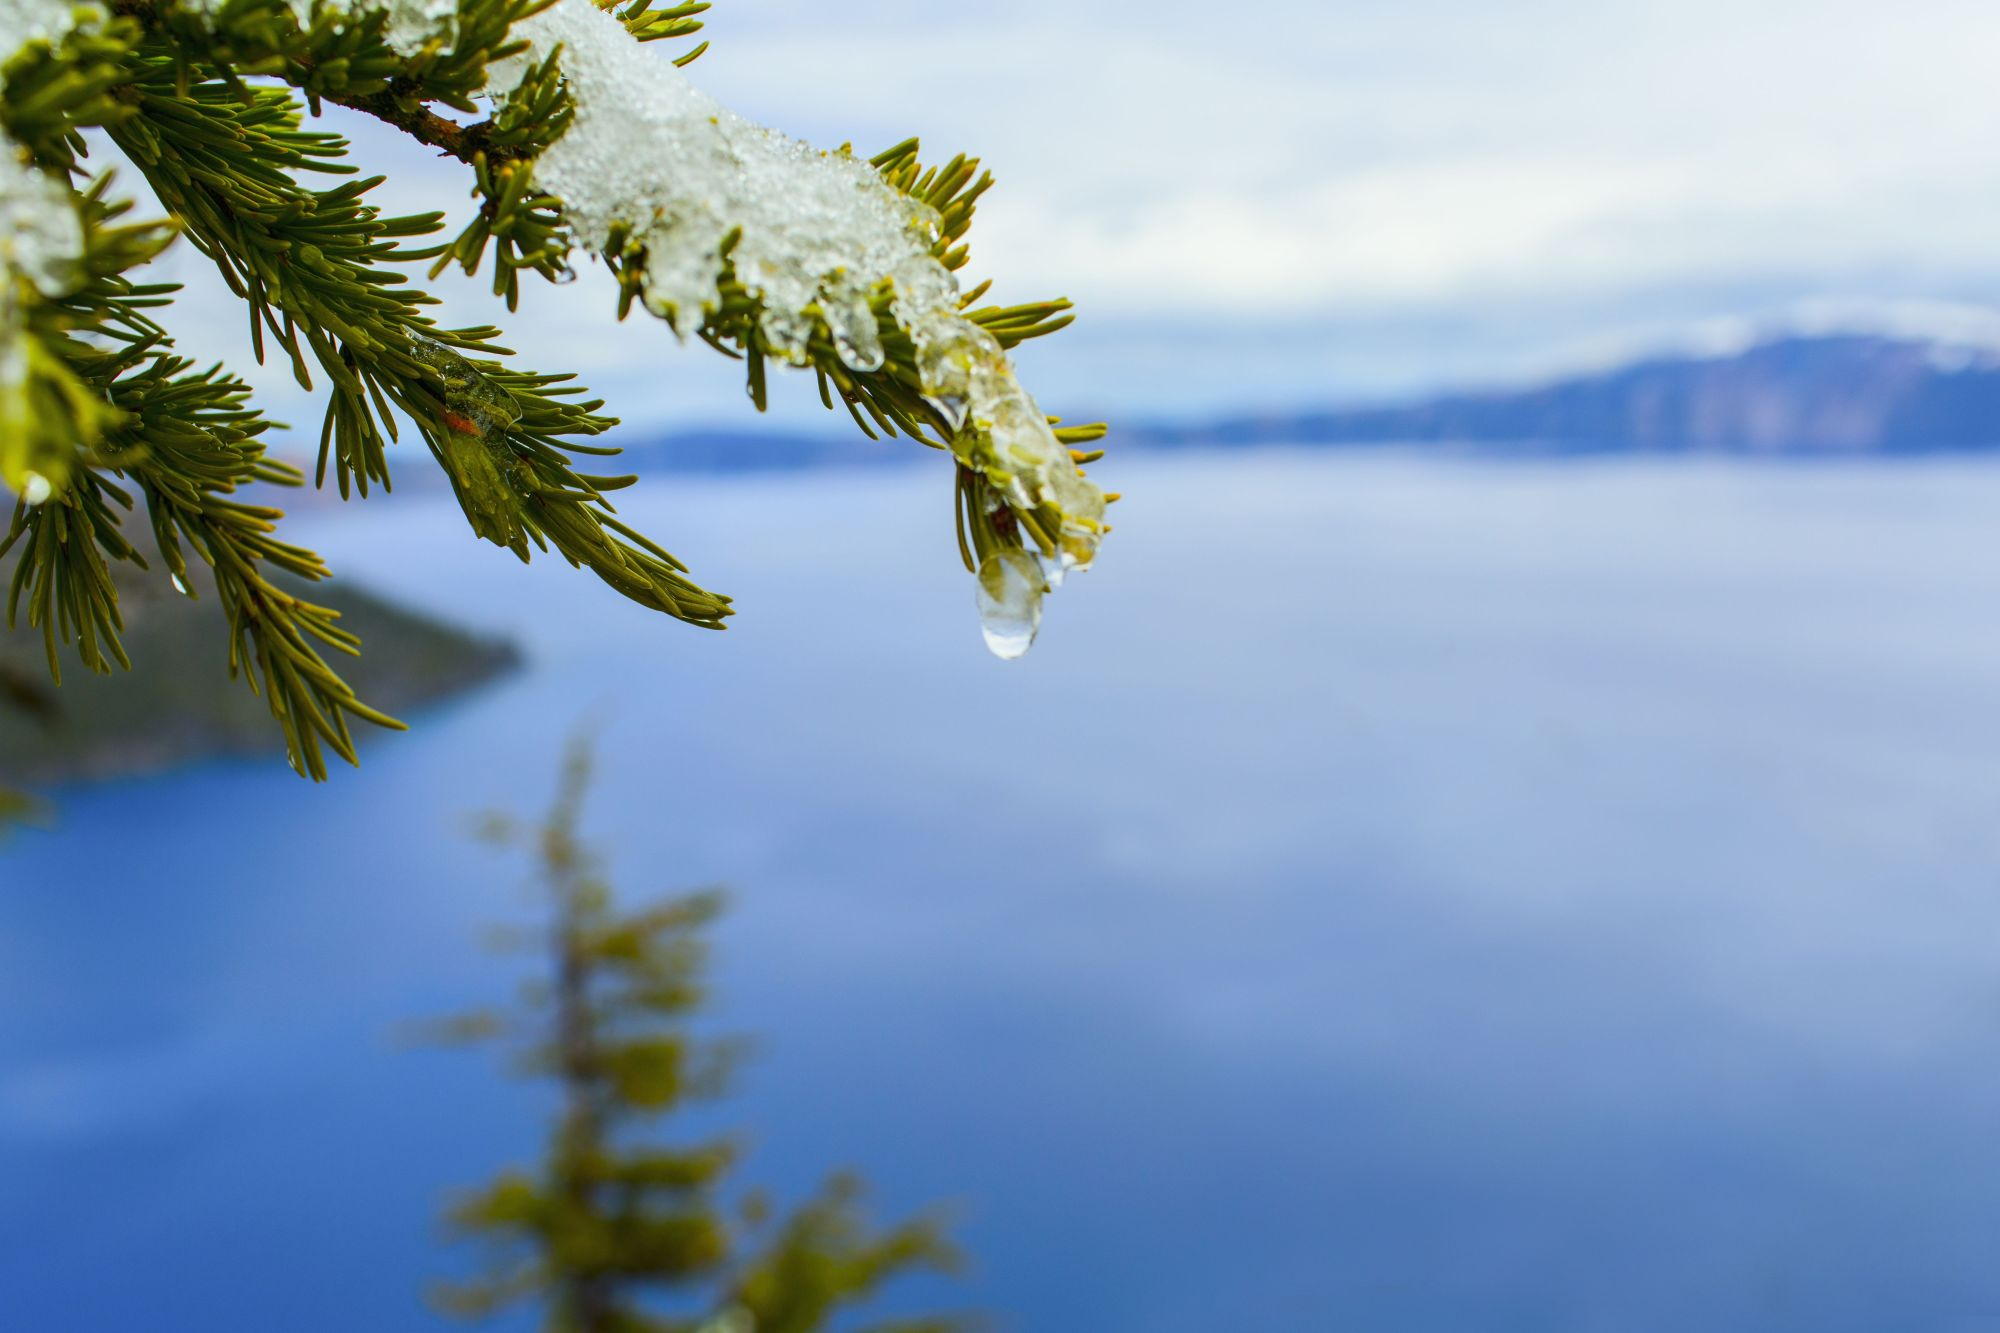 hight resolution of close up of melting snow on tree branch over crater lake oregon united states